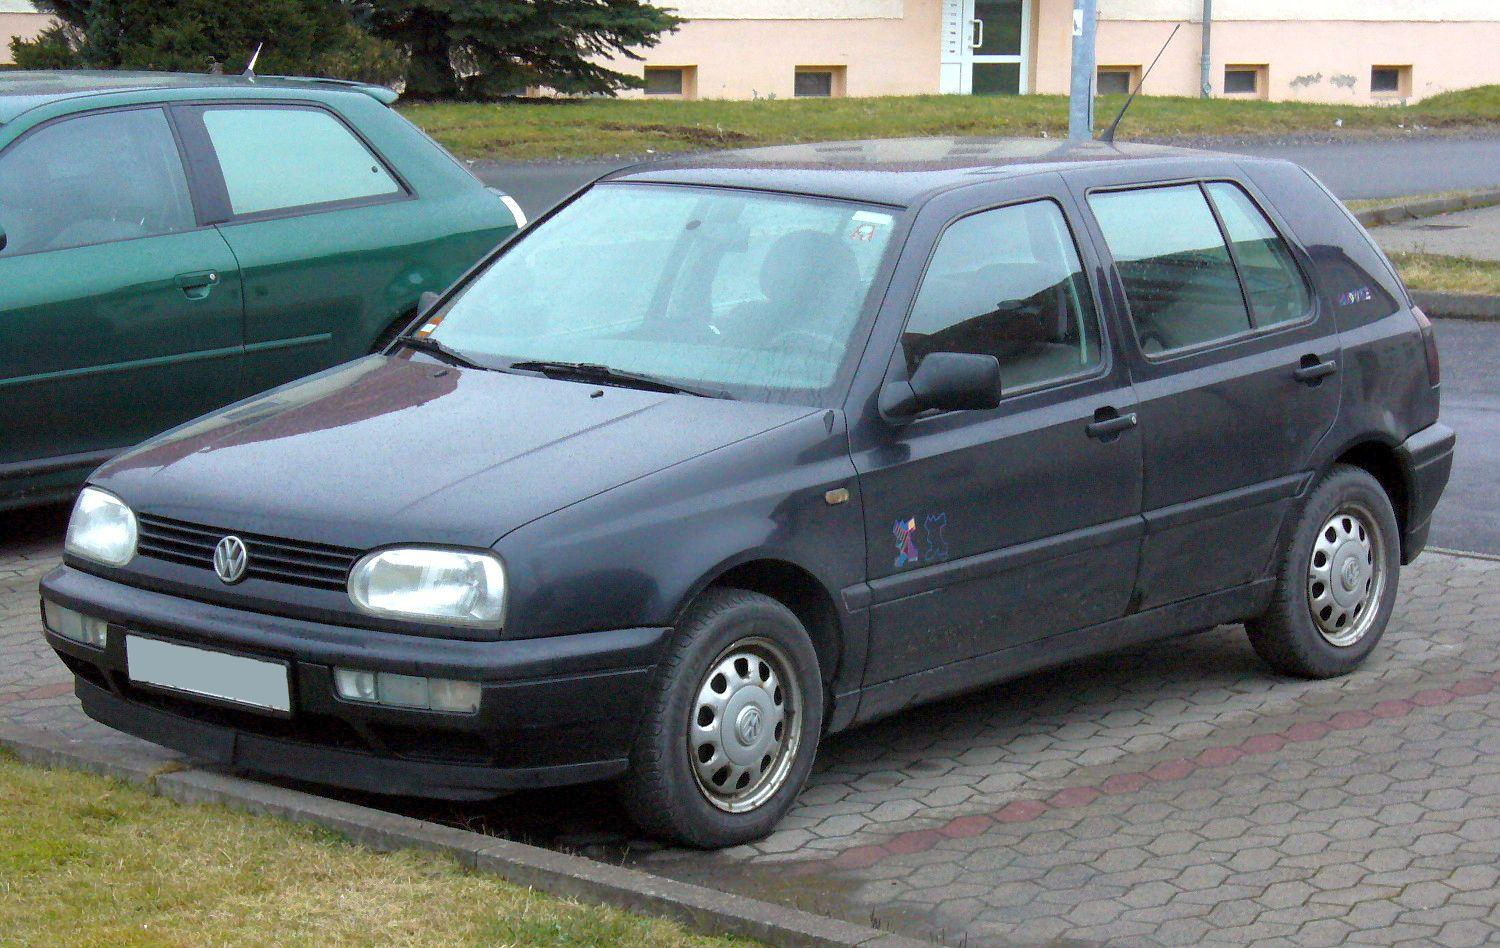 file vw golf iii movie jpg wikimedia commons. Black Bedroom Furniture Sets. Home Design Ideas